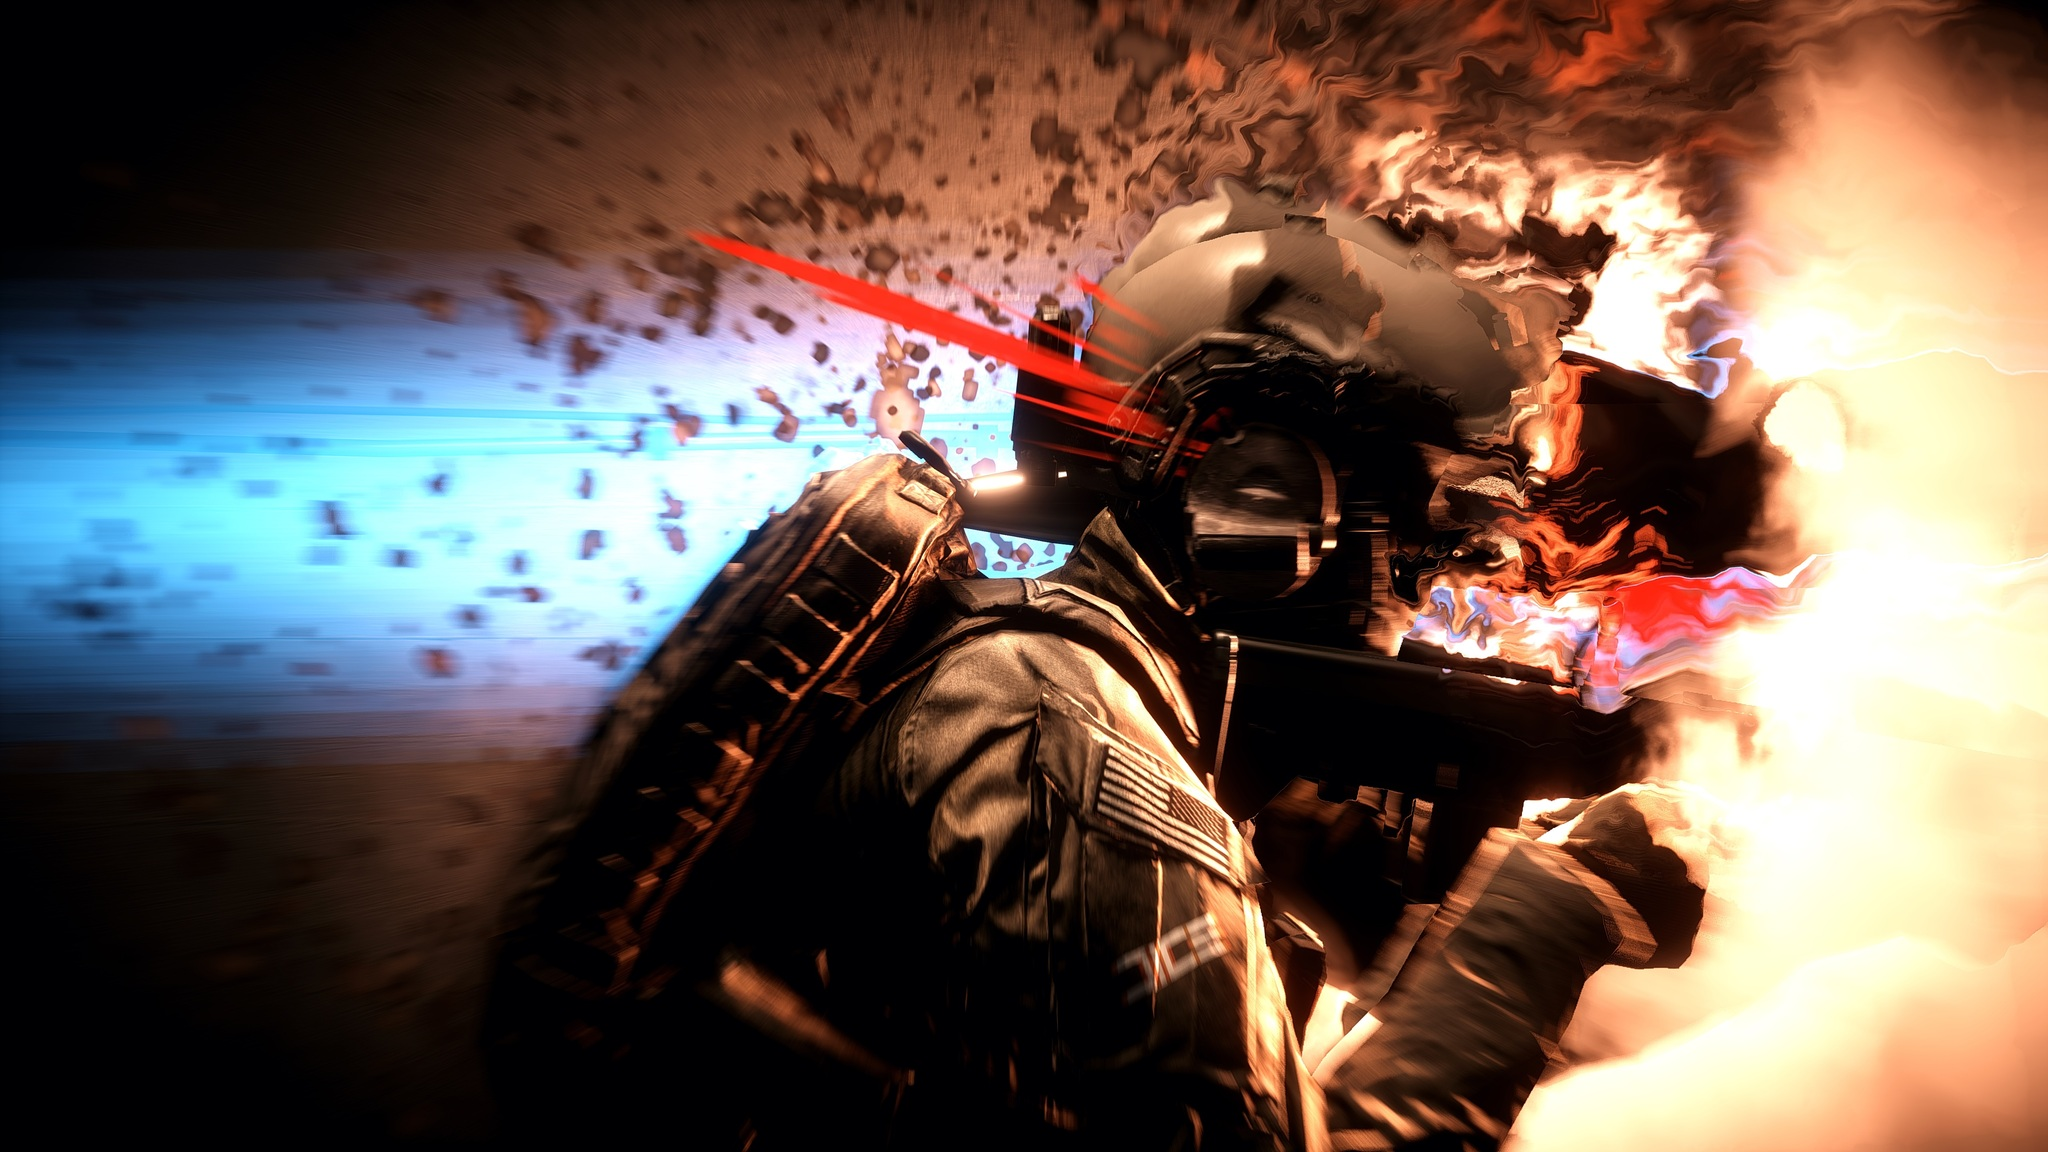 Download Wallpaper 1280x1280 Battlefield 4 Game Ea: 2048x1152 Battlefield 4 Soldier 5k 2048x1152 Resolution HD